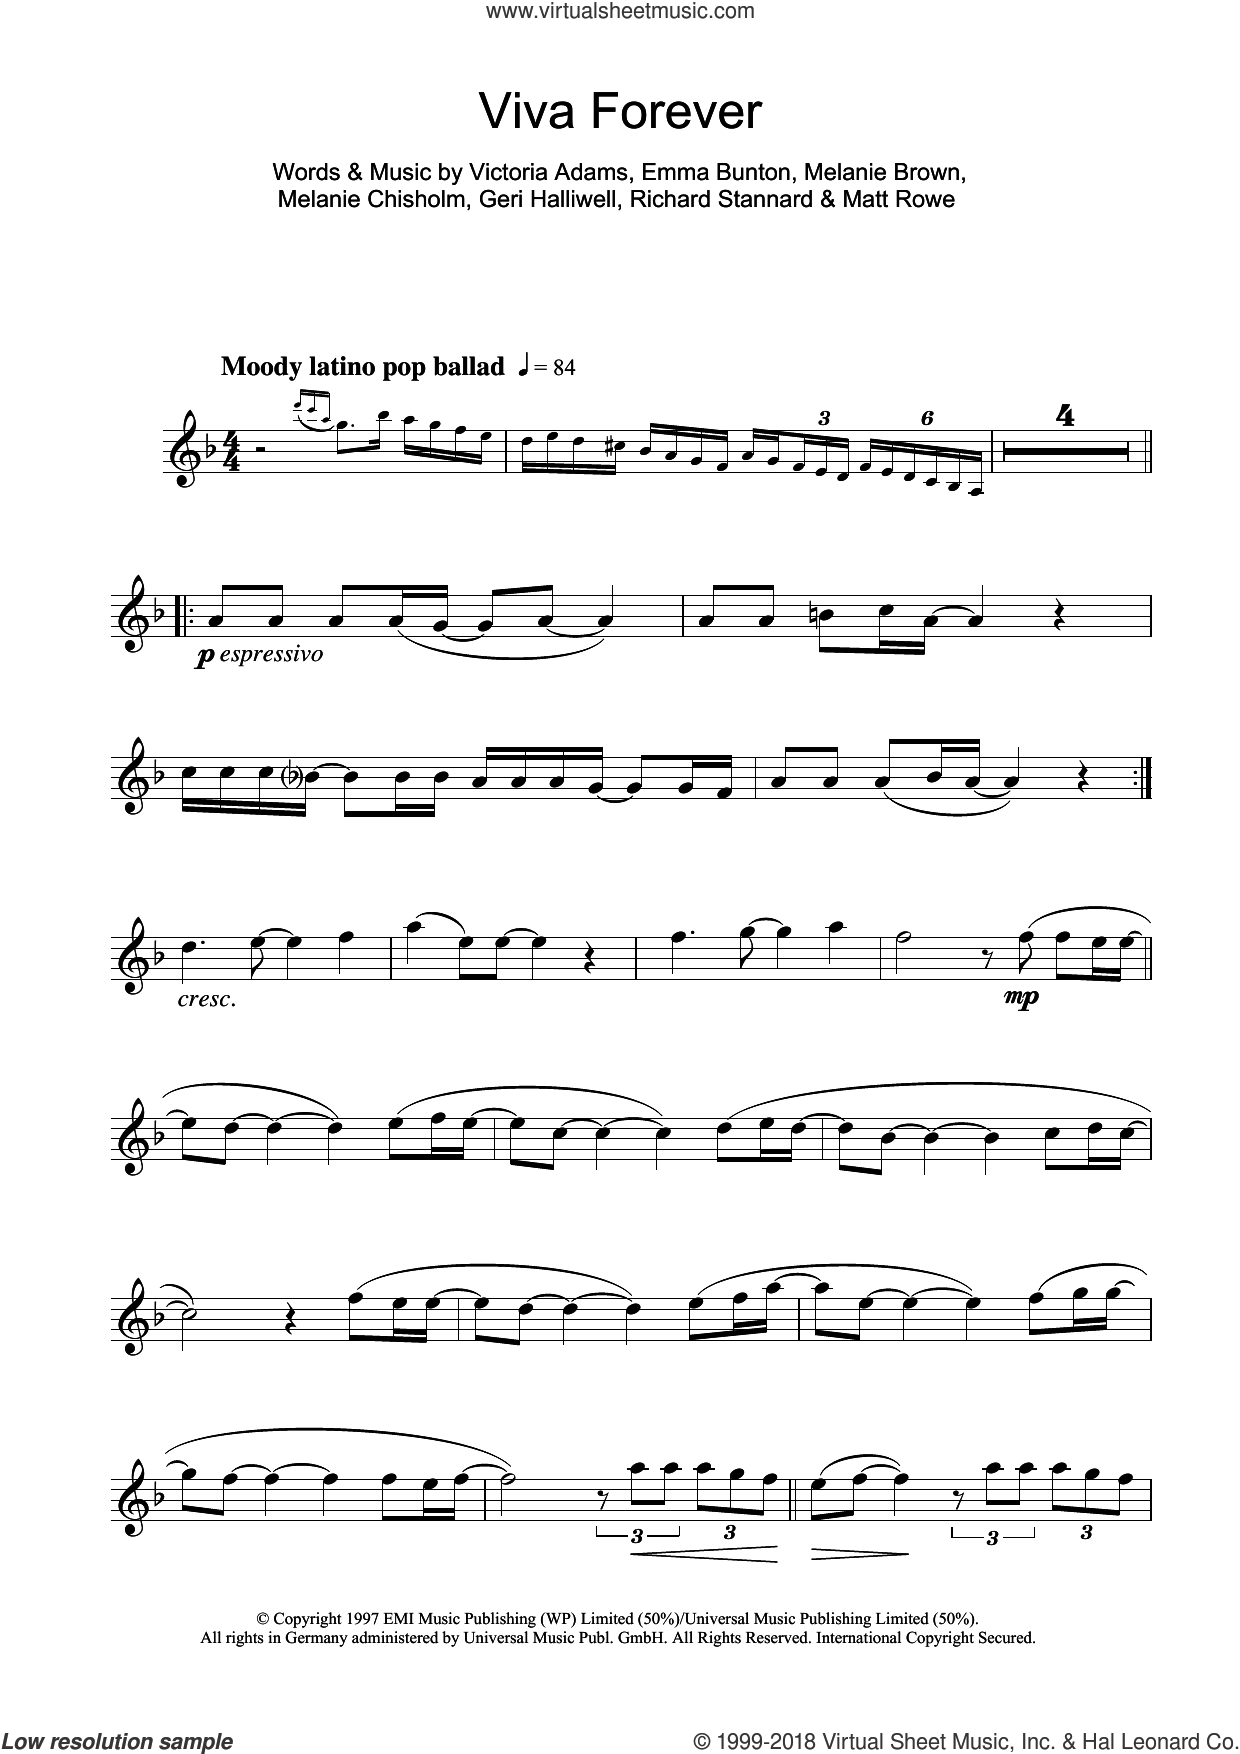 Viva Forever sheet music for flute solo by Spice Girls, Chisholm Melanie, Emma Bunton, Geri Halliwell, Matt Rowe, Melanie Brown, Richard Stannard and Victoria Adams, intermediate